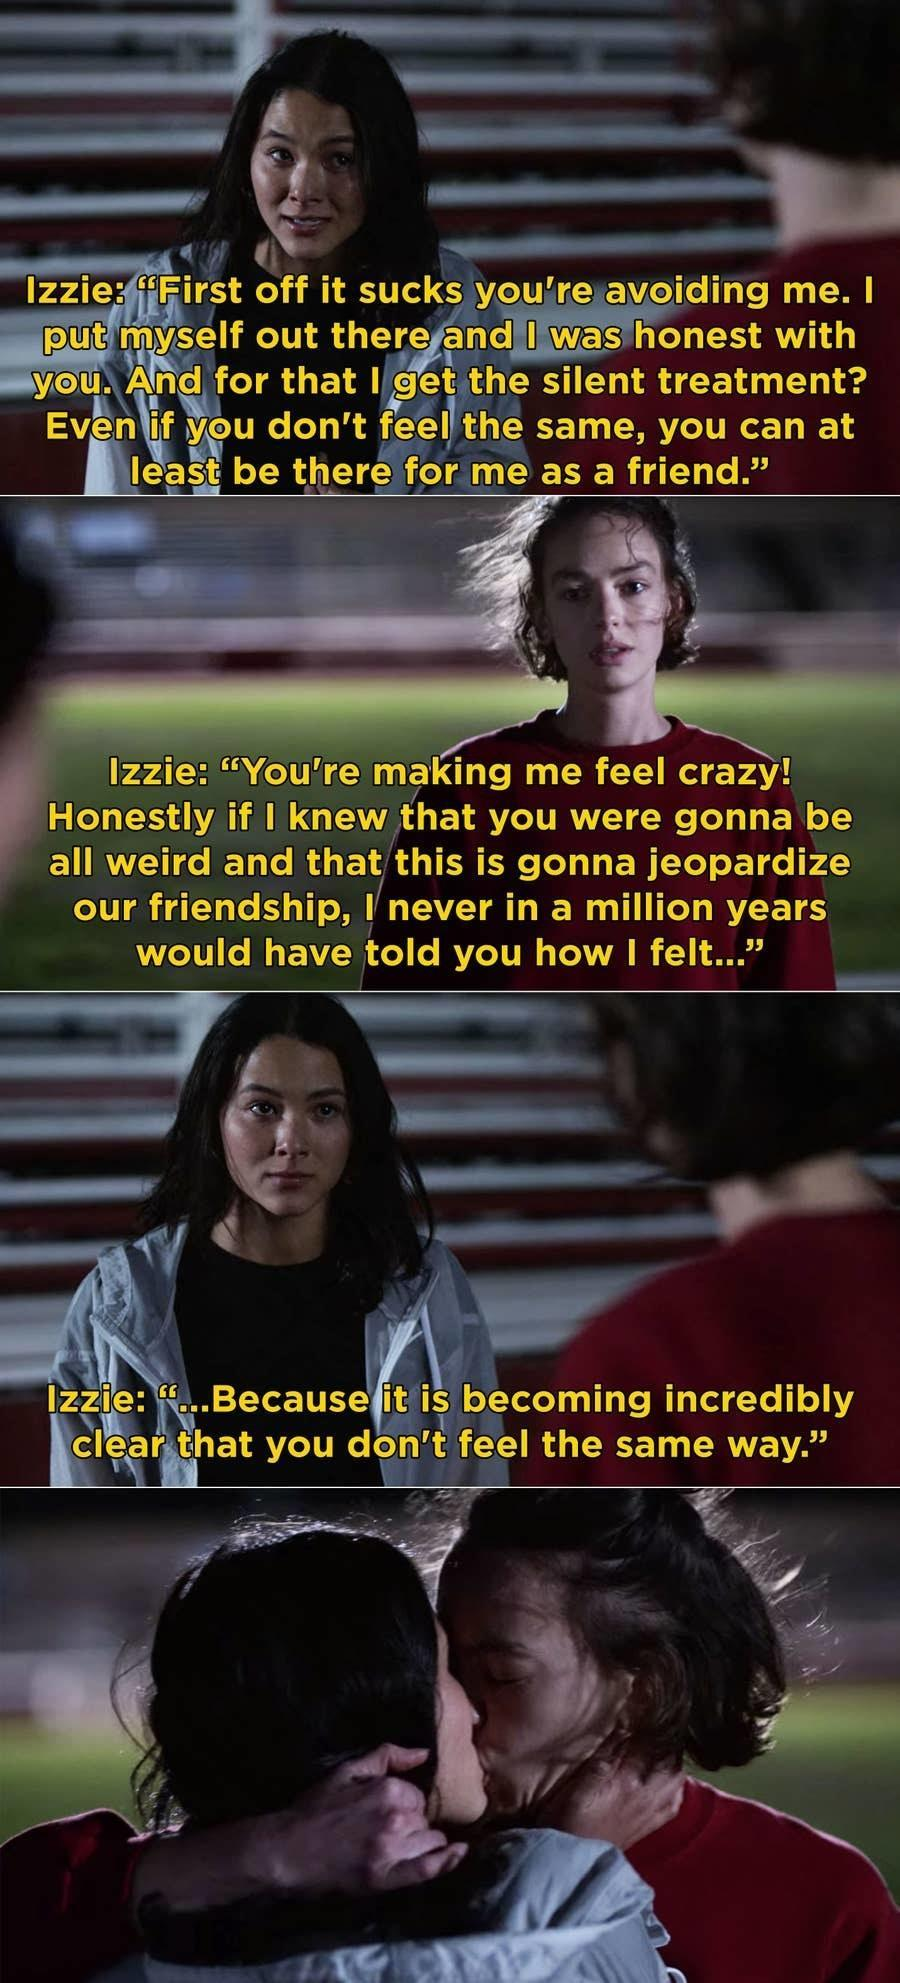 Izzie rants that she never would have told Casey how she felt if she knew it was going to ruin their friendship and that Casey obviously doesn't feel the same way, Casey kisses her